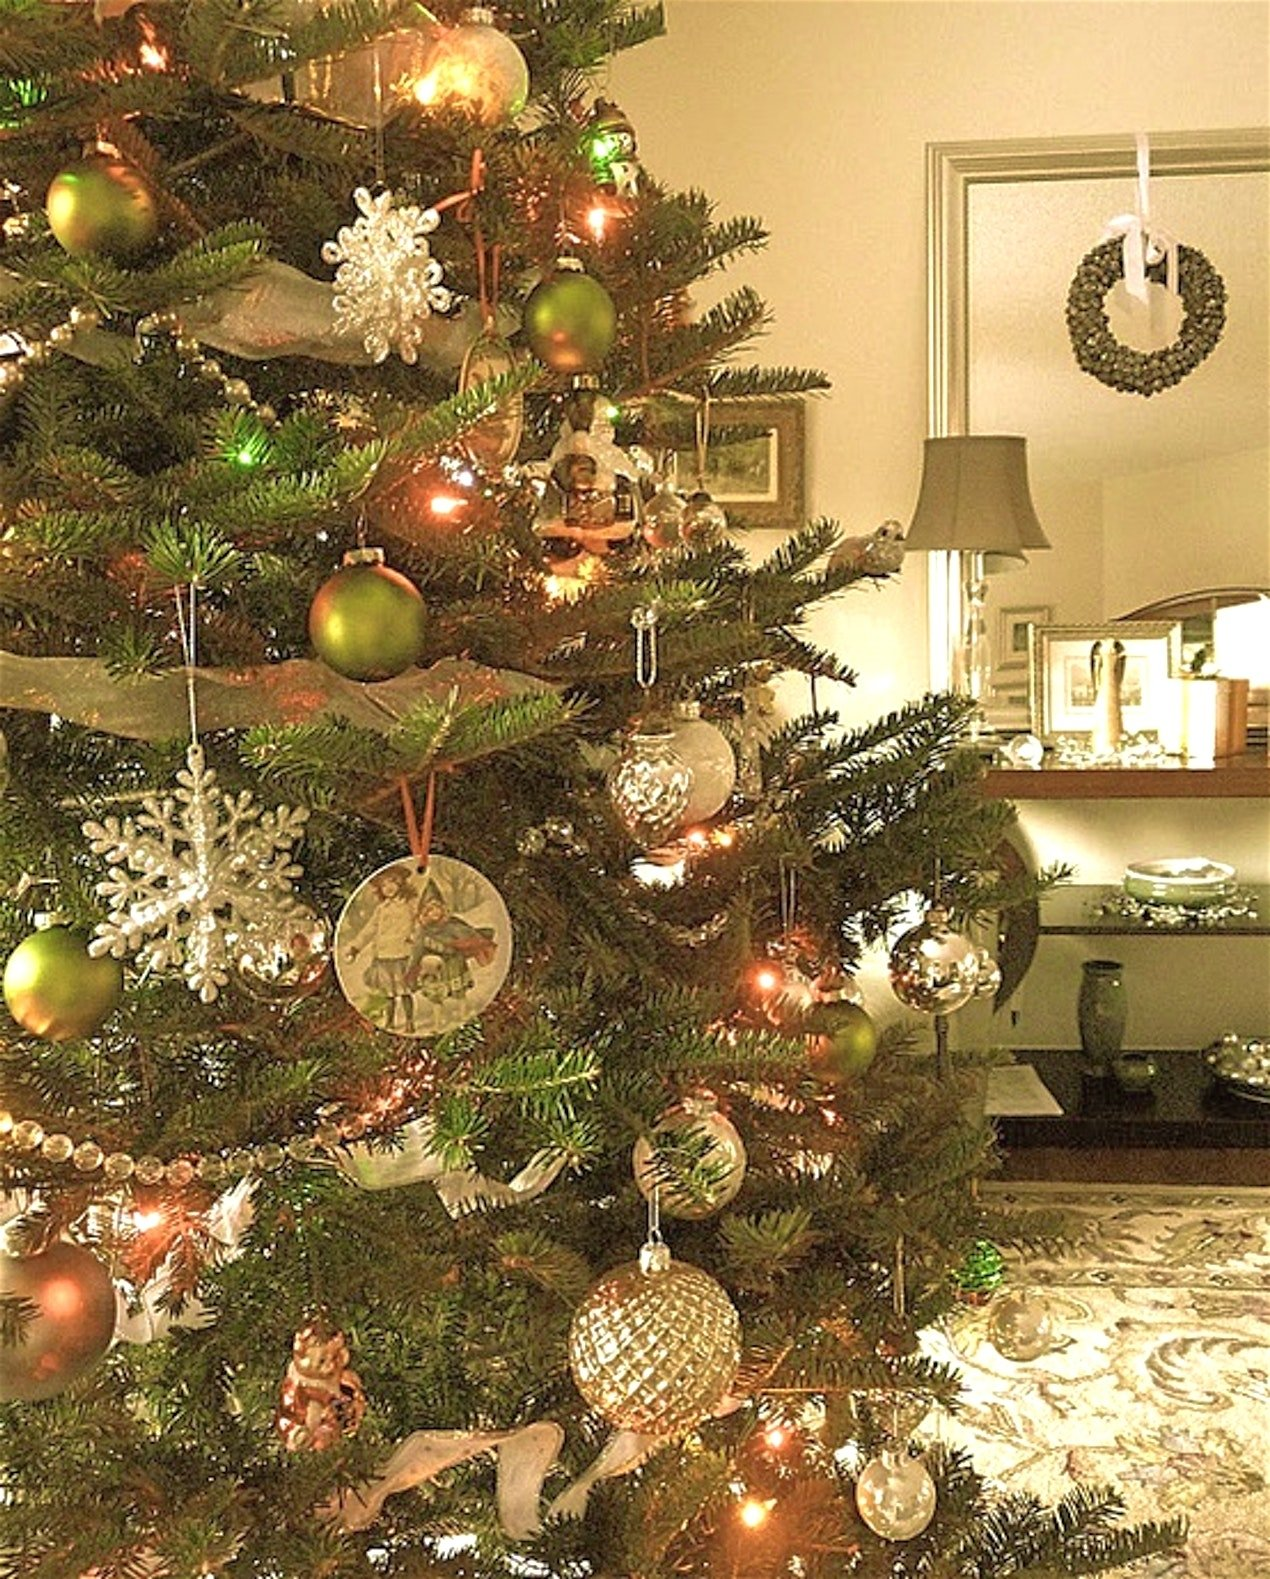 10 beautiful old fashioned christmas decorating ideas luxury shape - Old Fashioned Christmas Decorating Ideas